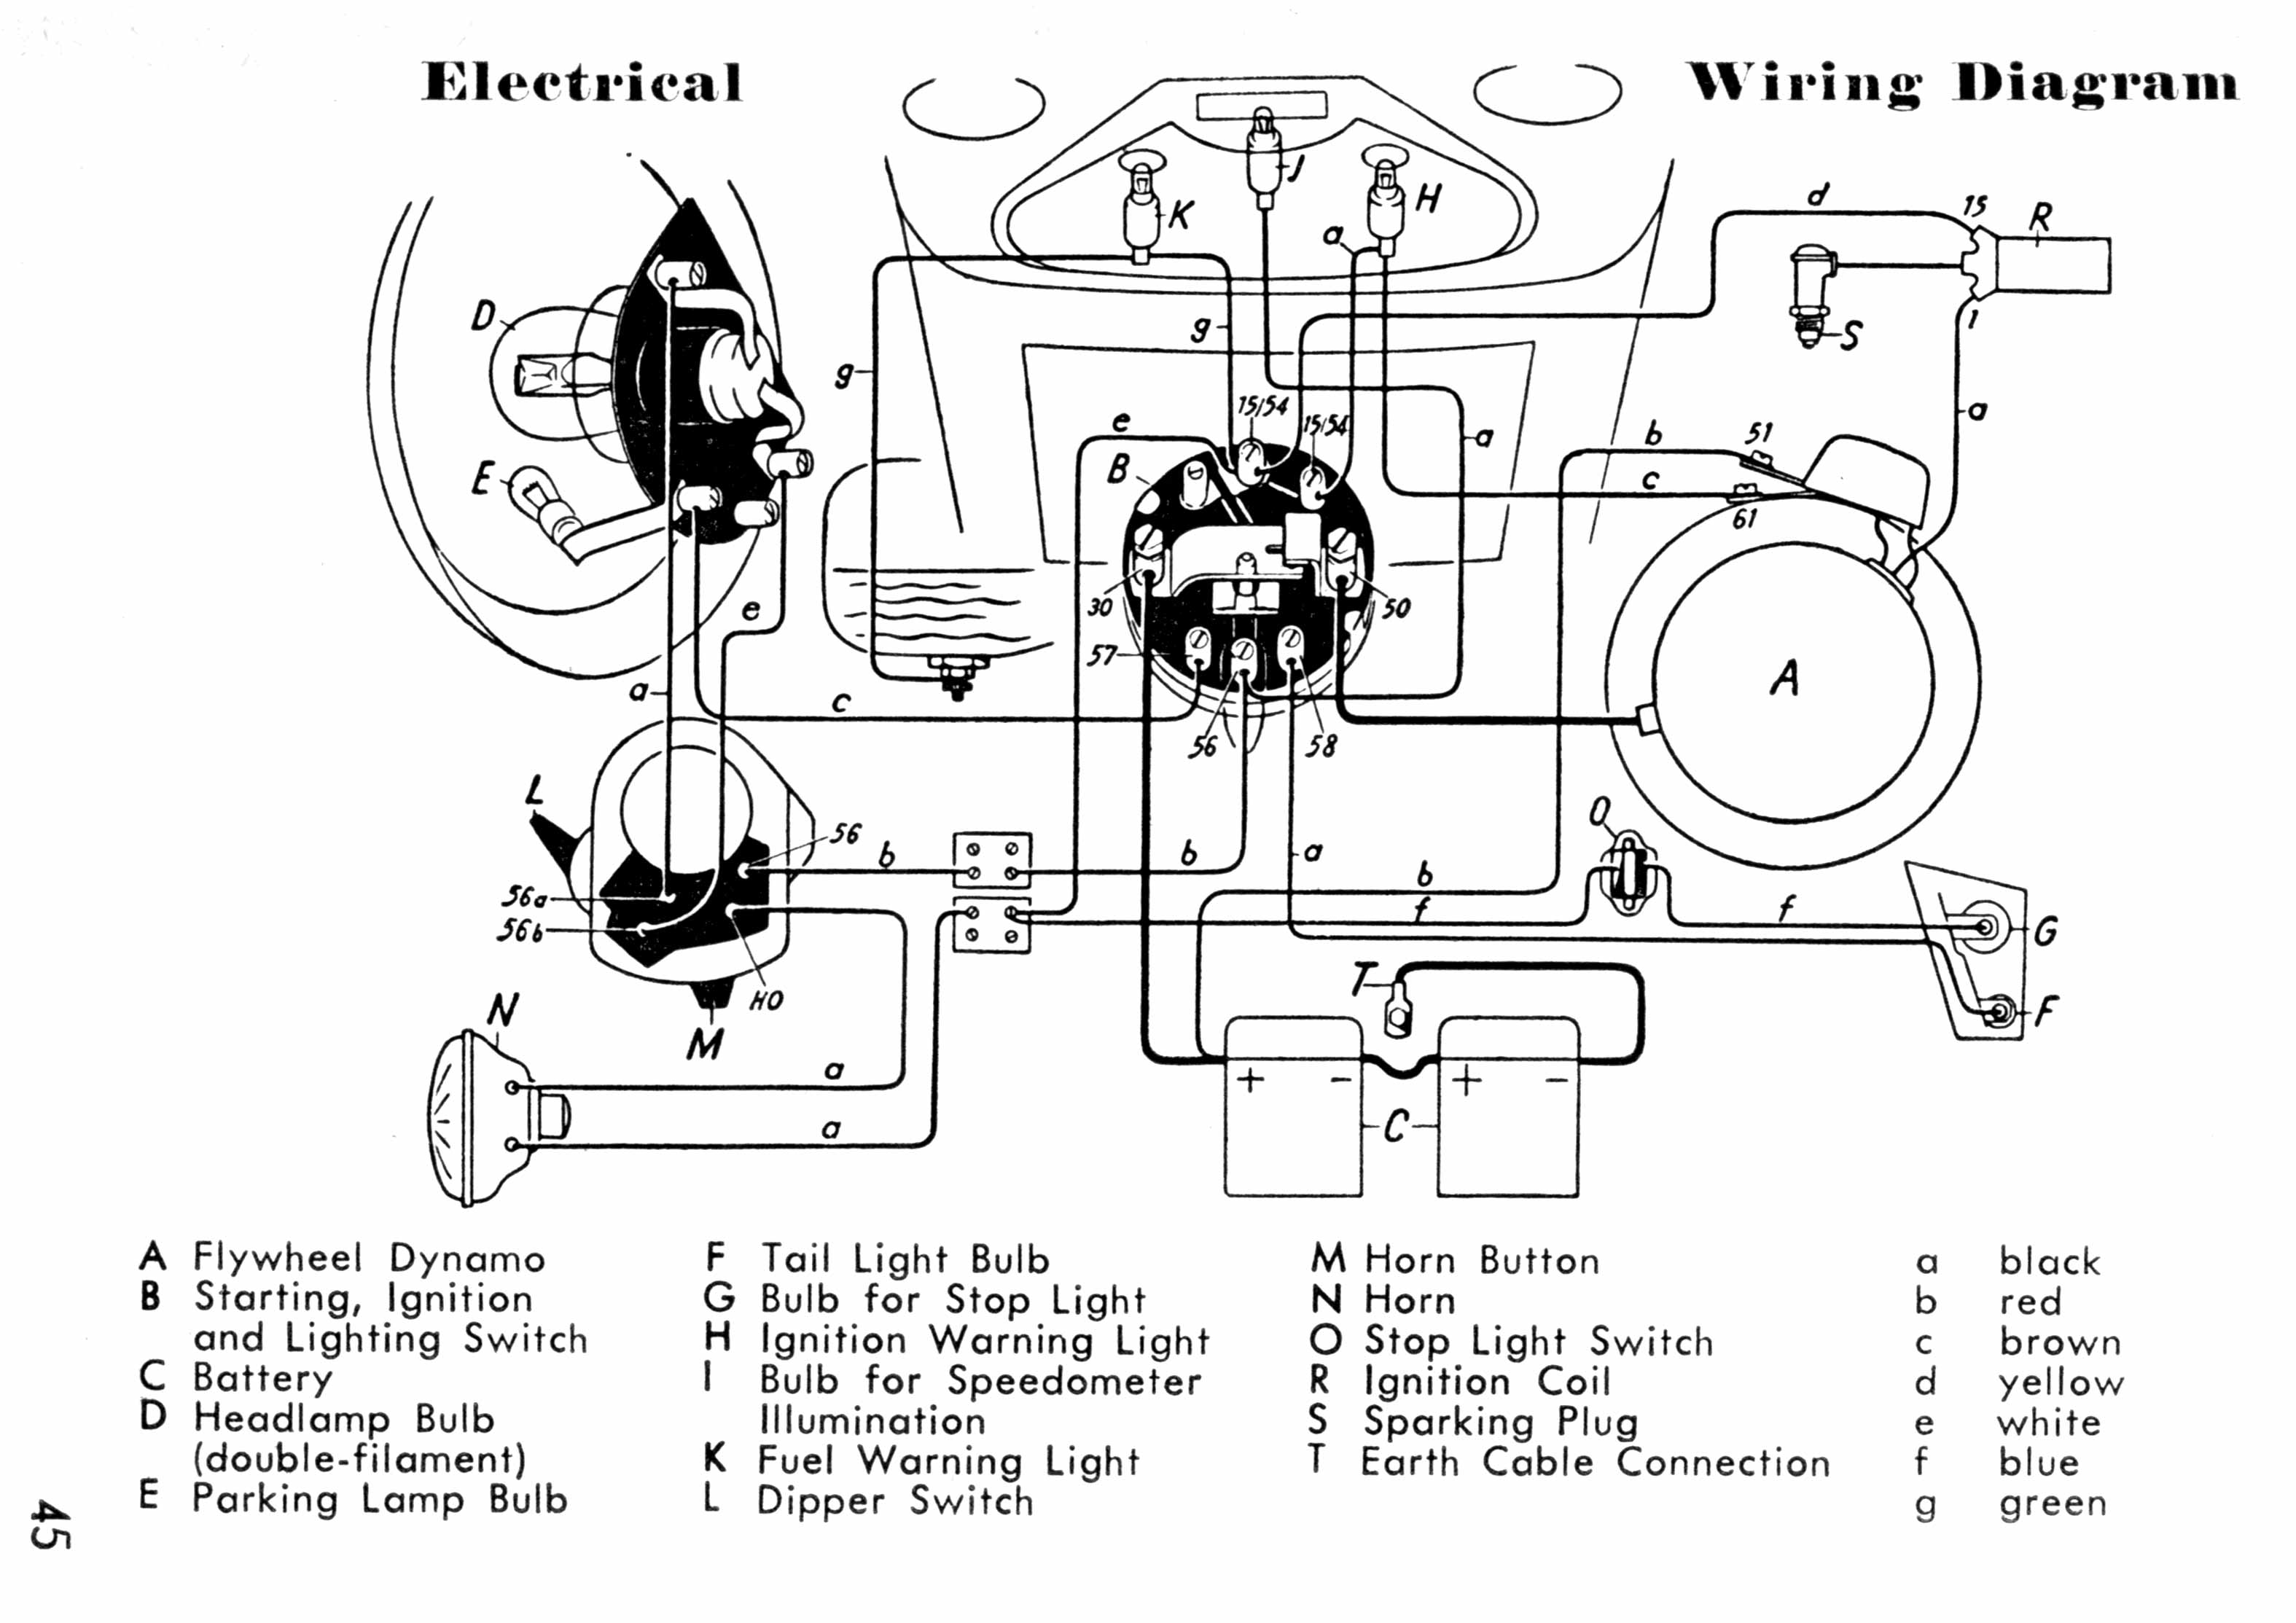 Watch moreover Viewit as well Cummins Power Generation Pcc3100 in addition 202yq Wiring Diagram Local Jcb Dealer Says One Ignition Switch besides Watch. on perkins engine starter wiring diagram